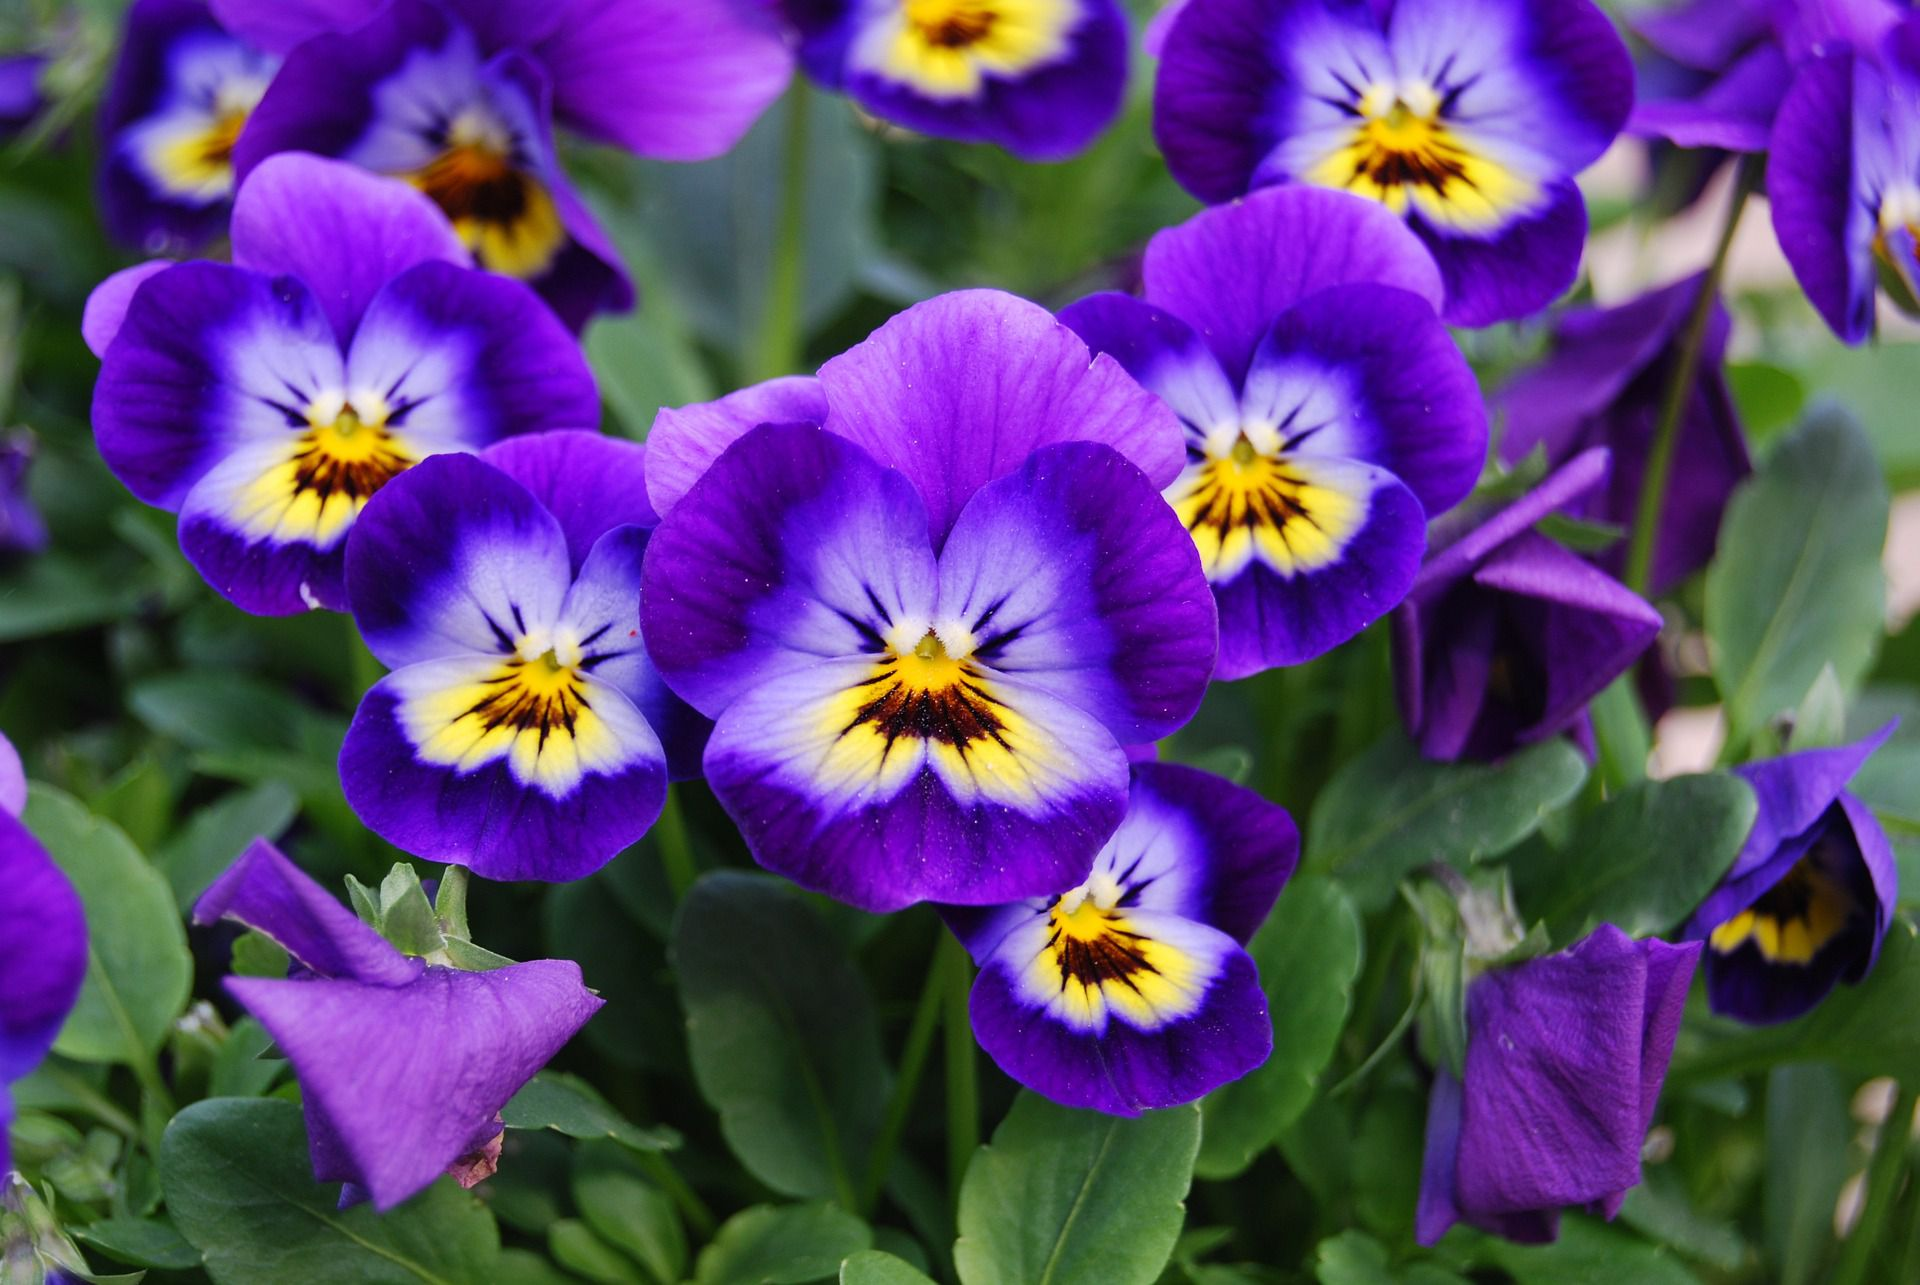 Flowers that bloom in the winter in missouri - How To Grow Charming Cool Season Violas Perennial Plants